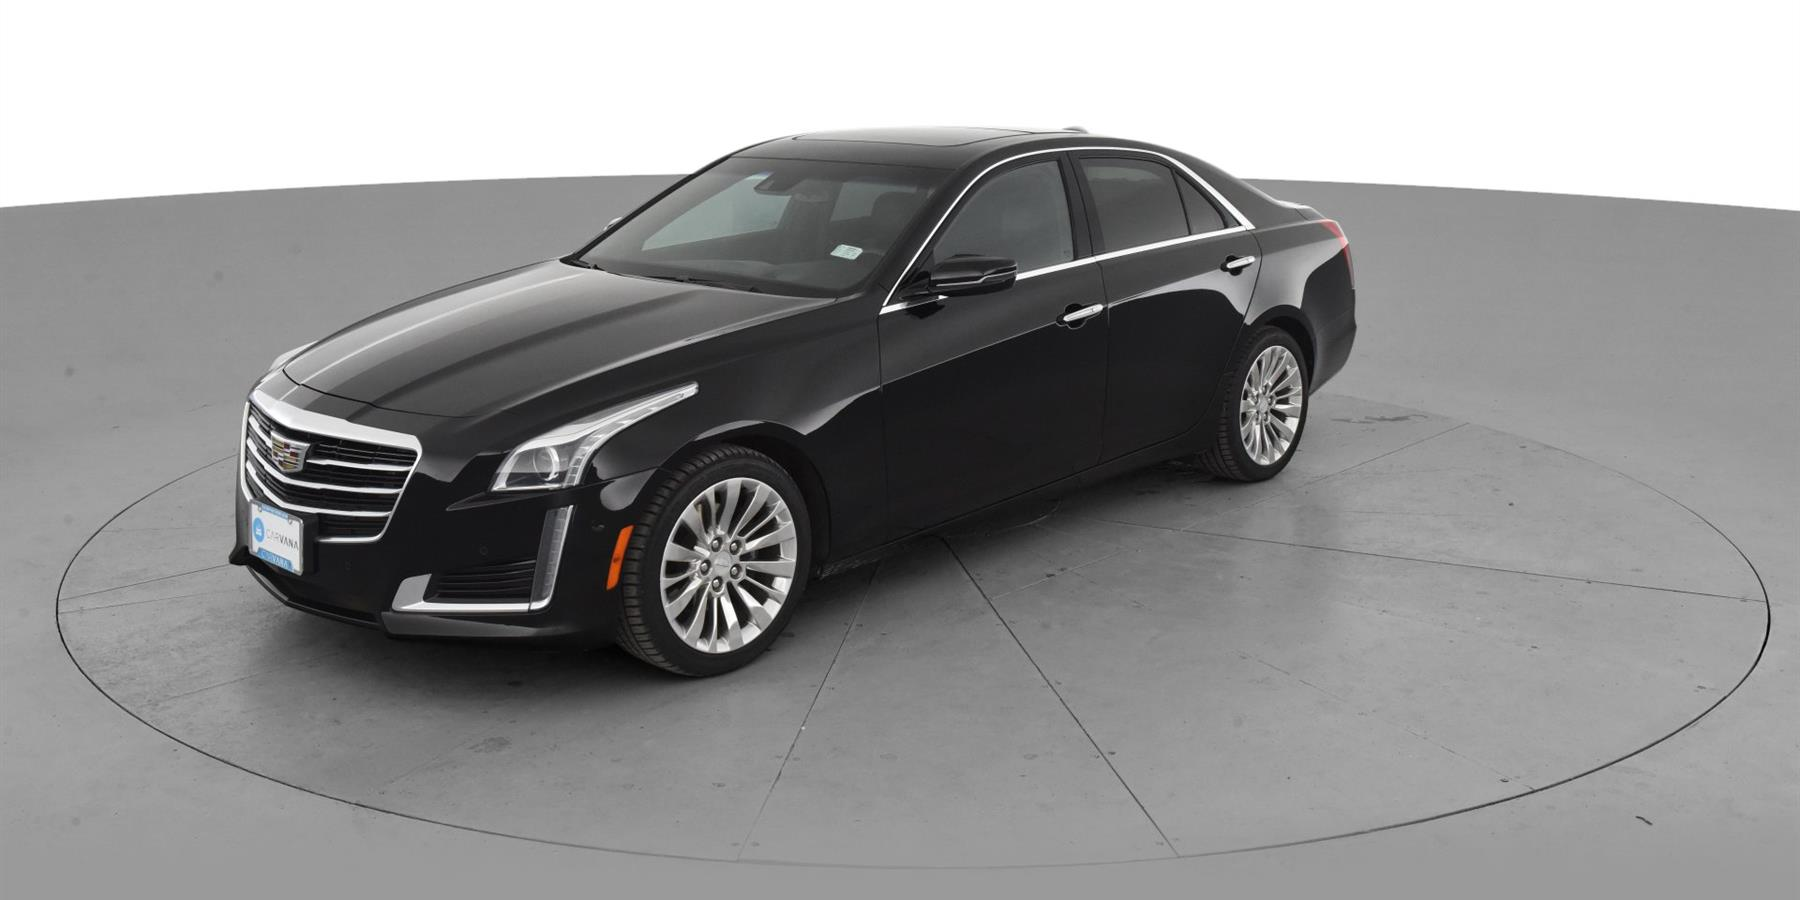 What Does Cts Stand For >> 2016 Cadillac Cts 2 0 Premium Collection Sedan 4d For Sale Carvana